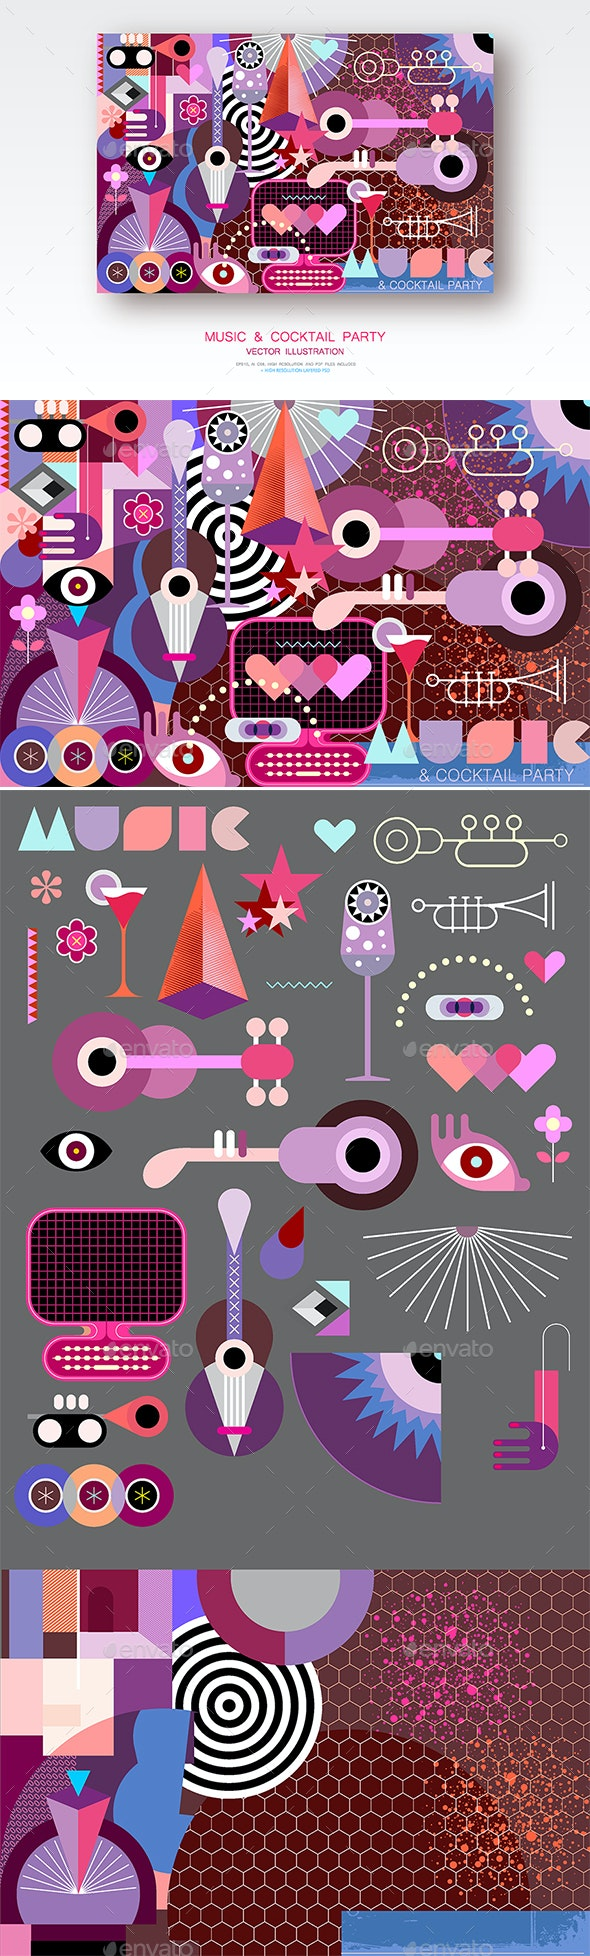 Music and Cocktail Party Vector Illustration - Backgrounds Decorative